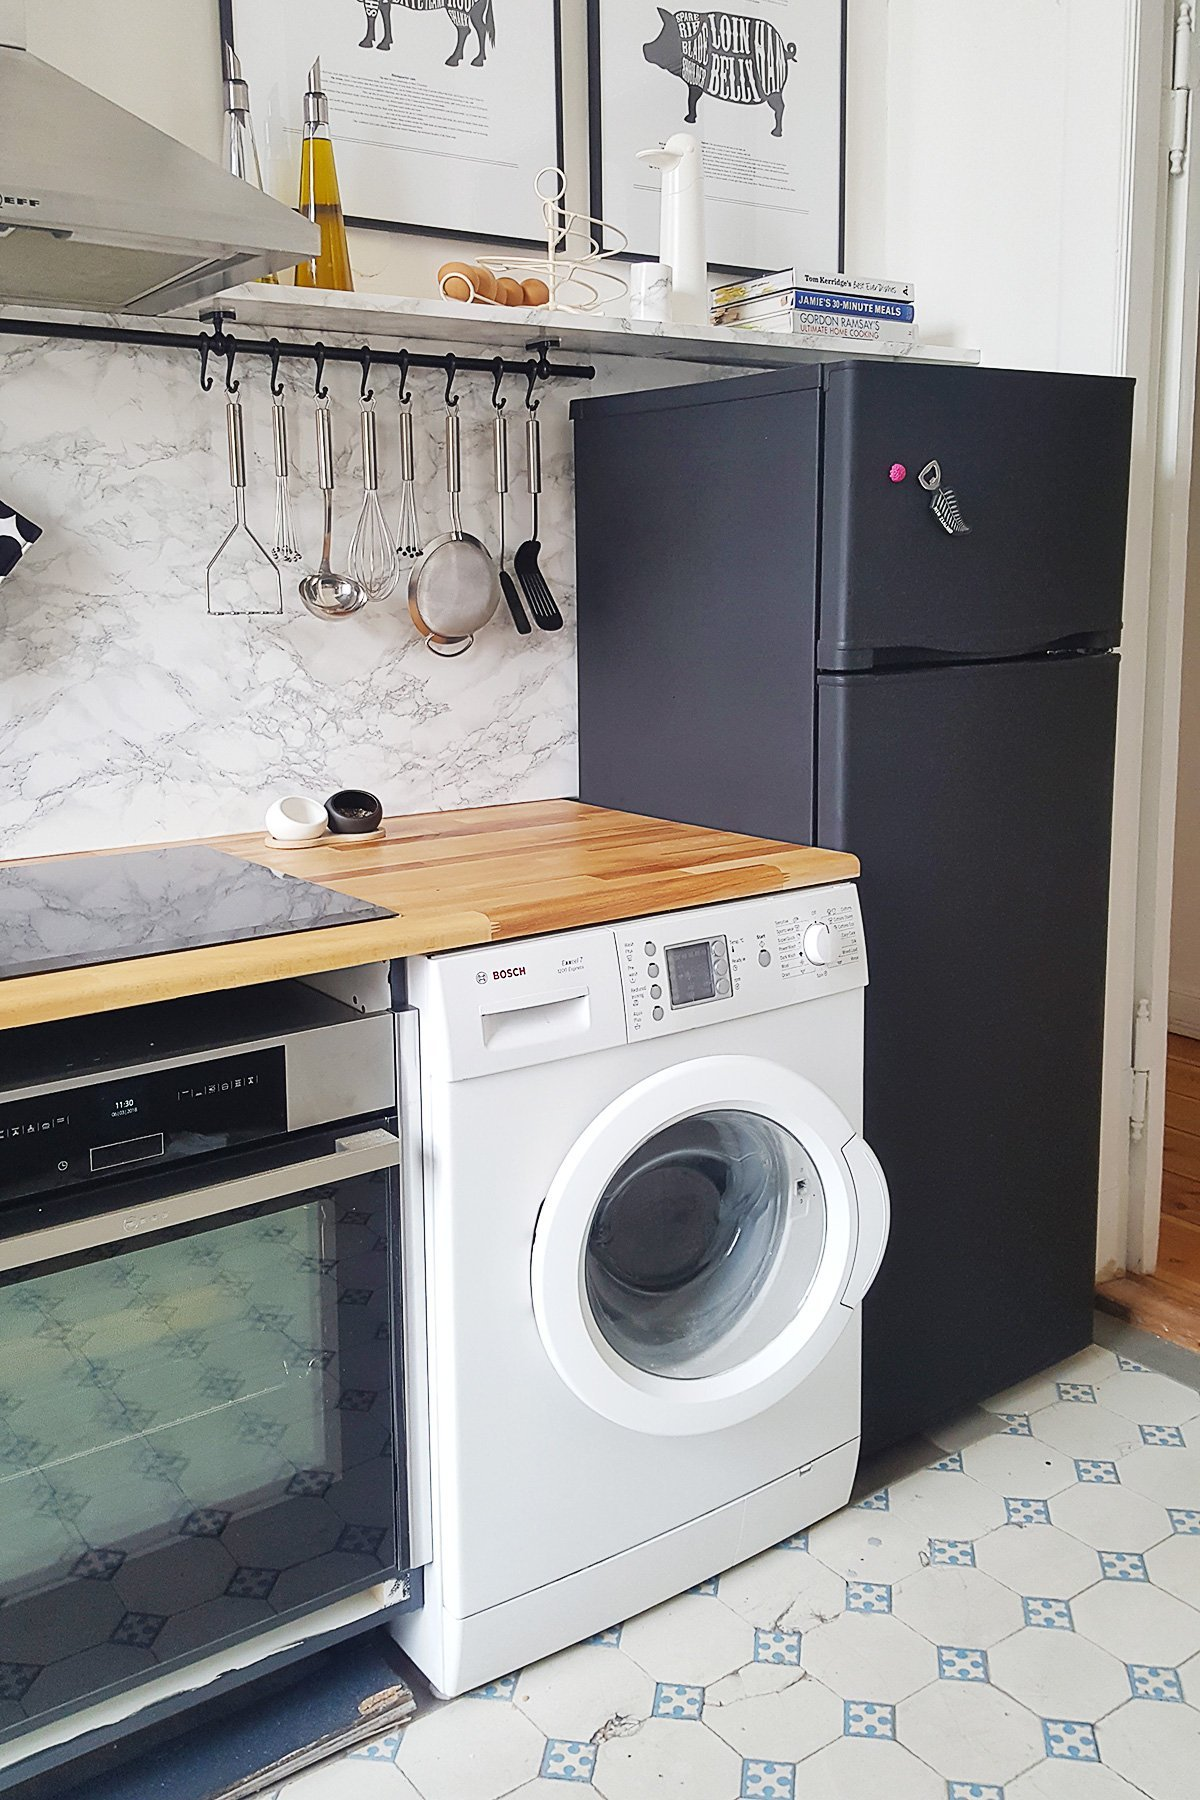 How To Paint A Washing Machine | Little House On The Corner